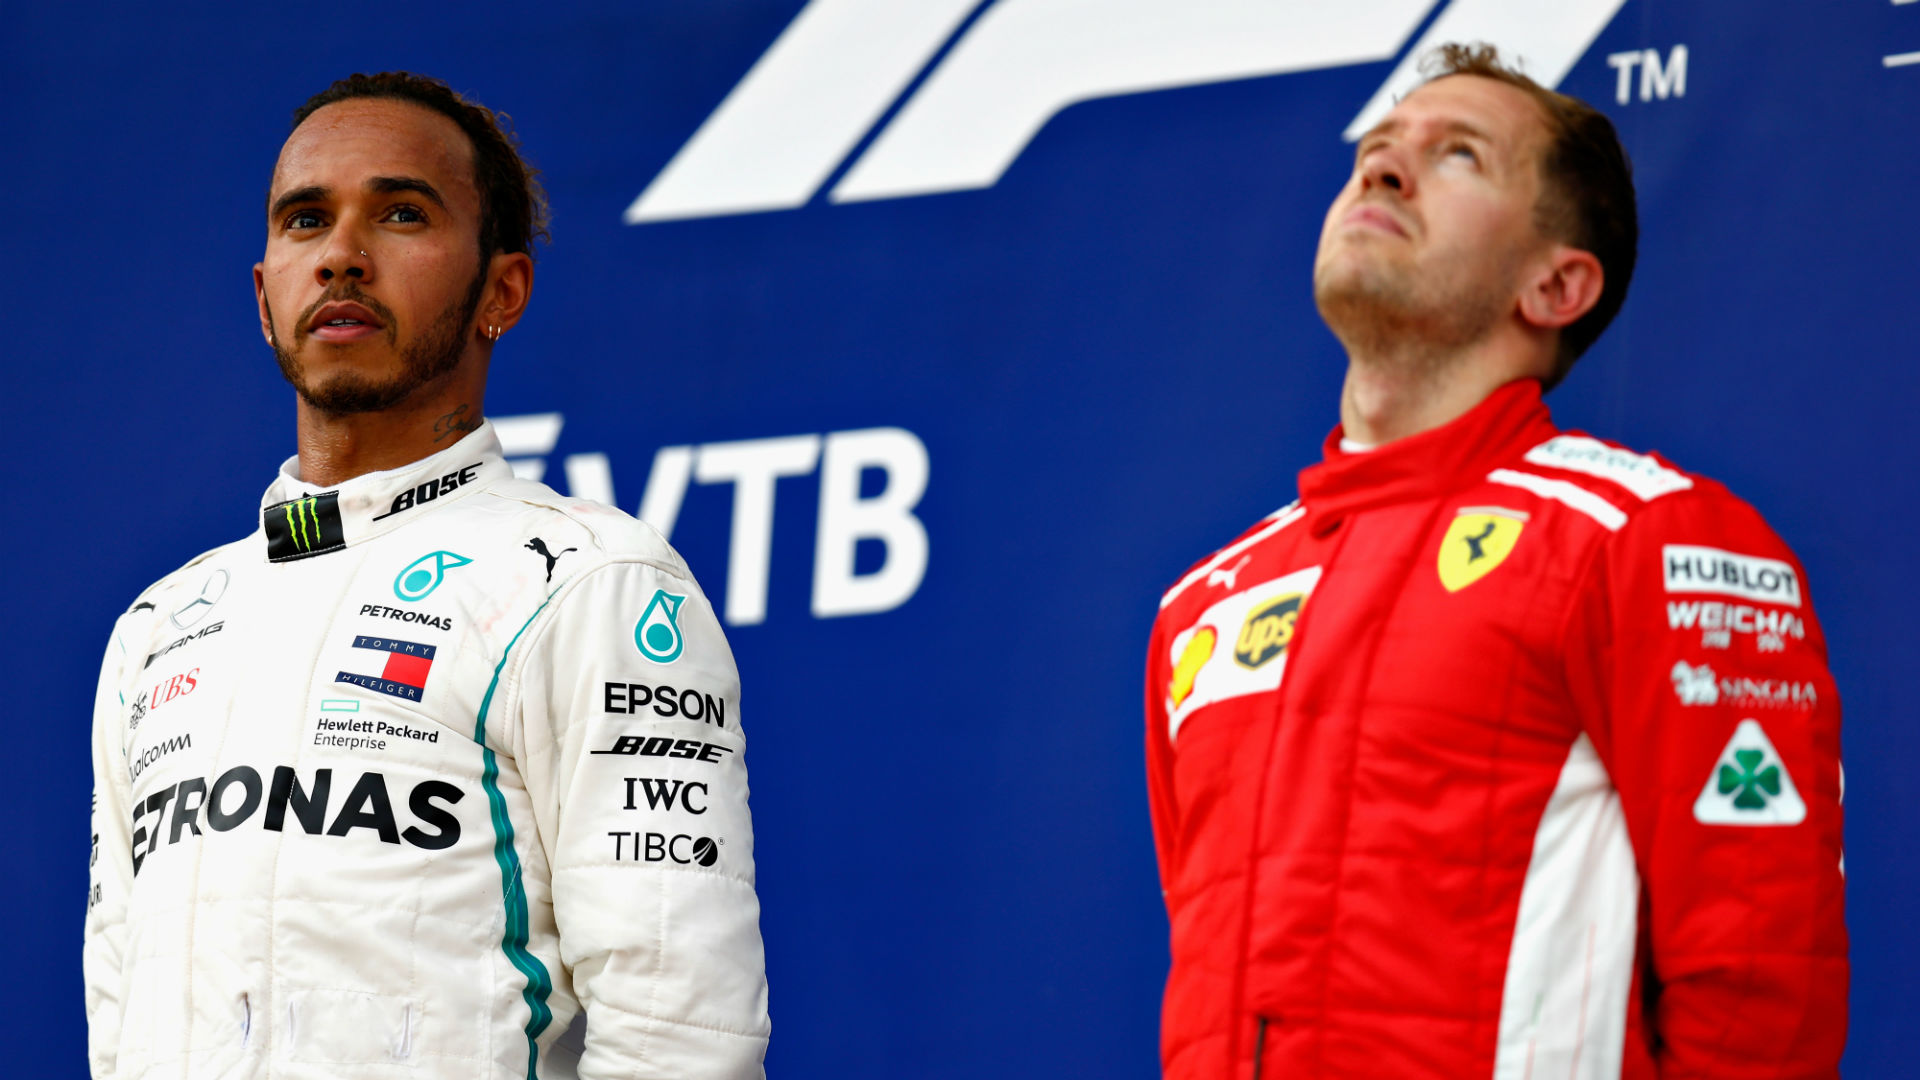 Hamilton believes Ferrari cracked under pressure as he claimed pole